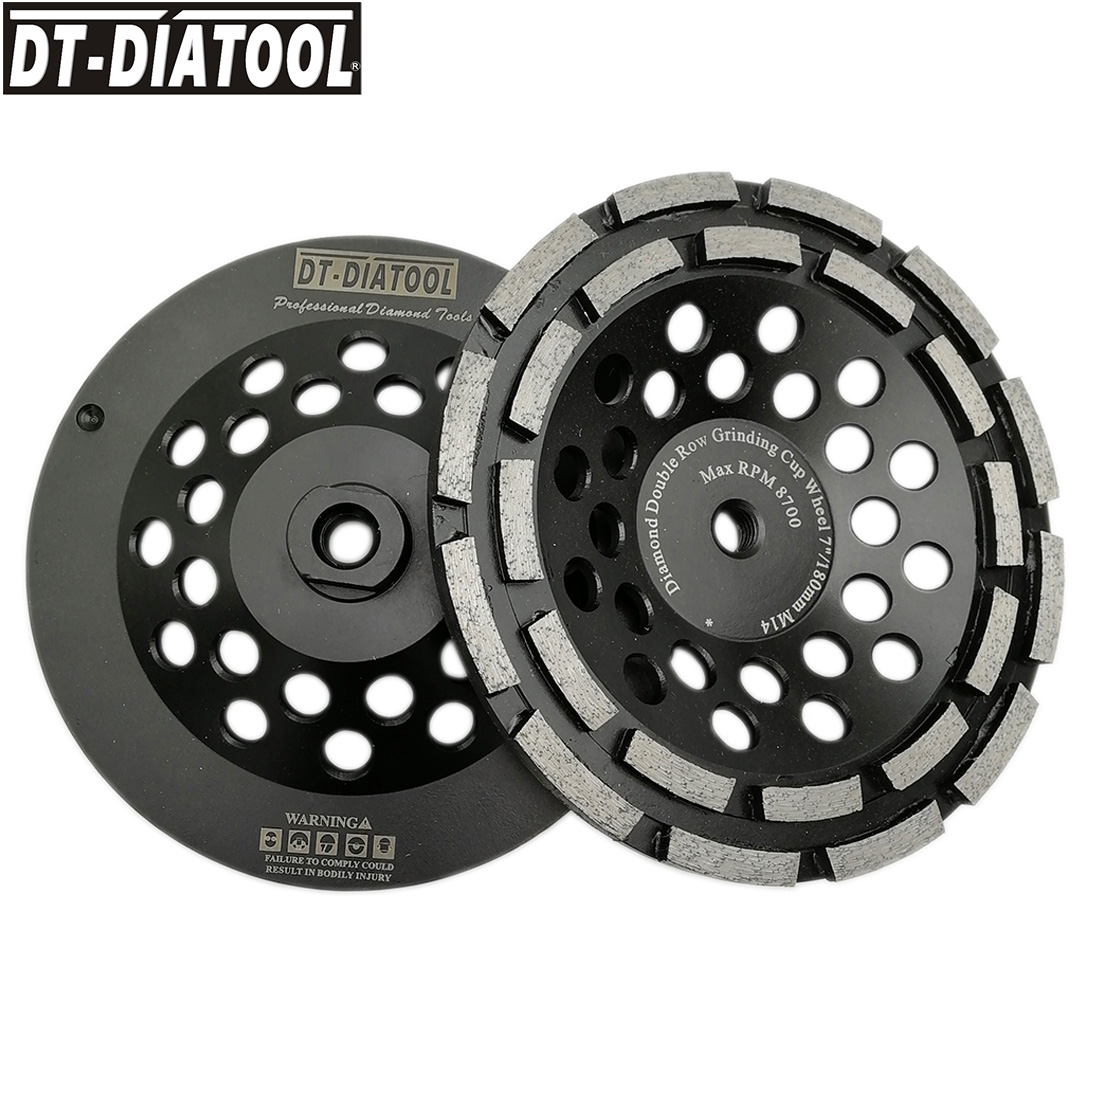 DT-DIATOOL 2pcs 180mm/7 Premium Diamond Double Row Cup Grinding Wheel for Concrete Hard Stone Granite M14 thread Grinding Disc 2pcs dia 125mmx10mm vacuum brazed diamond grinding wheel dia 5 beveling wheel flat for marble granite artificial concrete stone